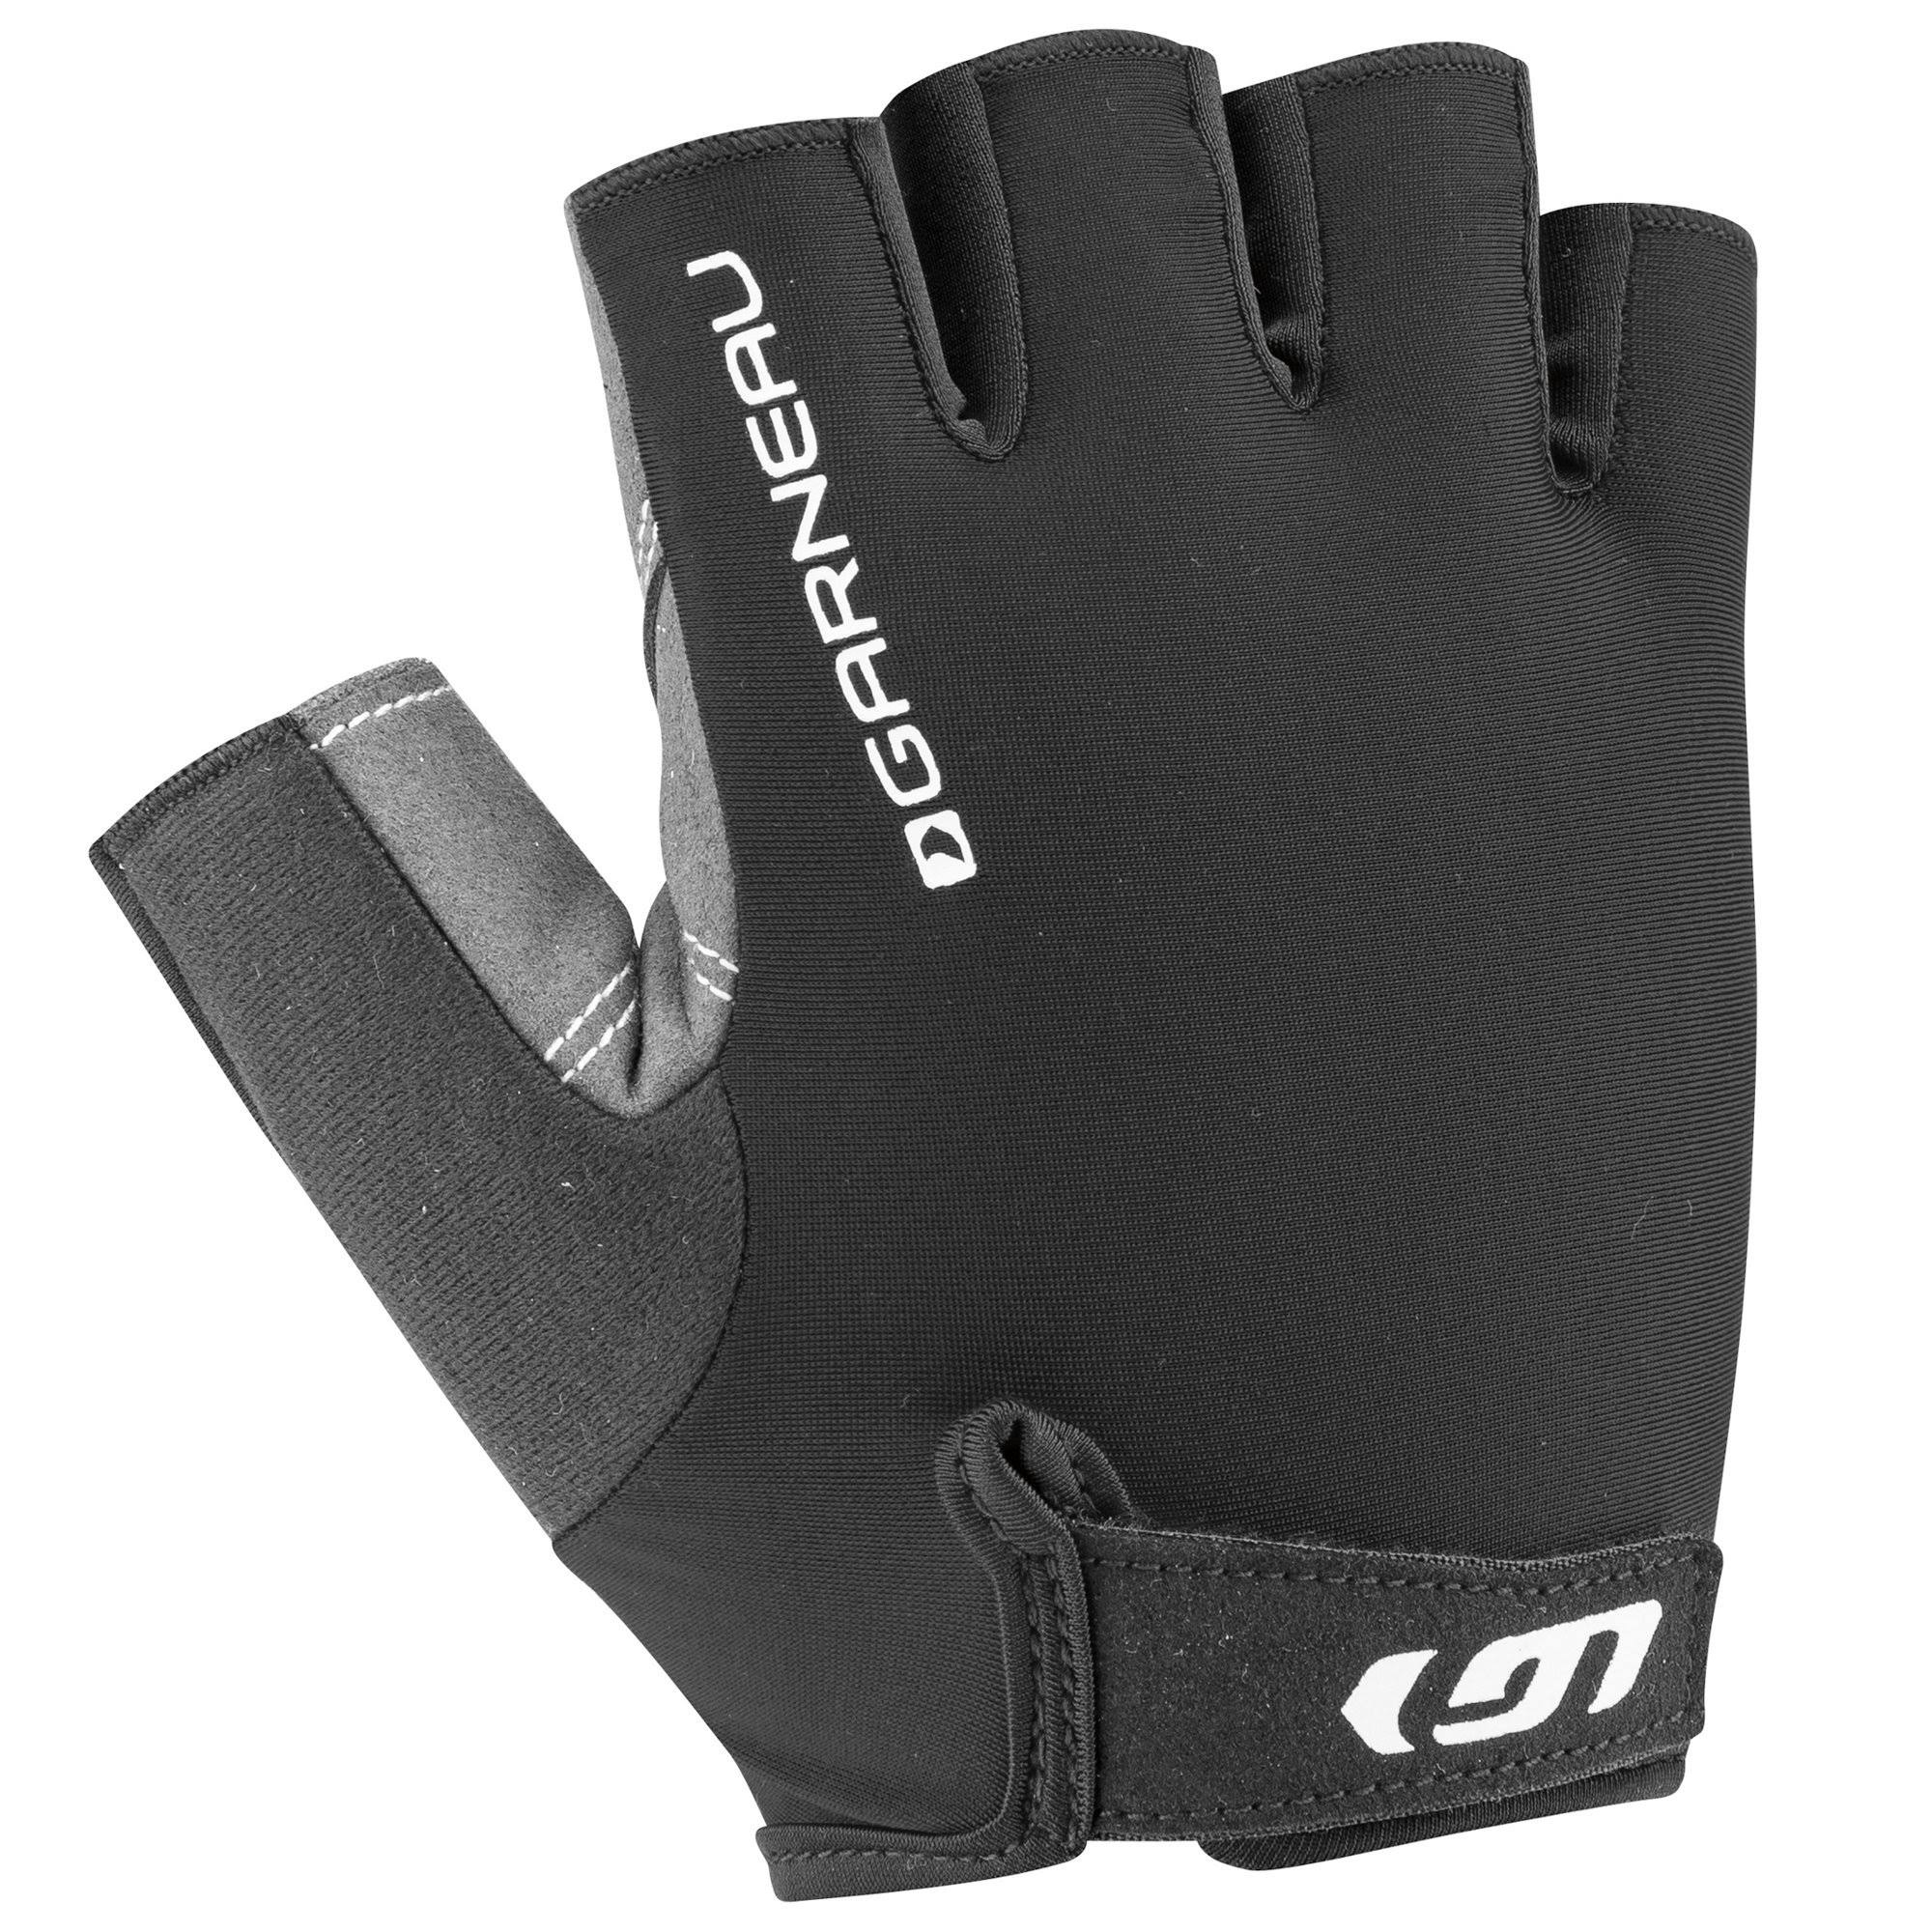 Louis Garneau Calory Cycling Gloves